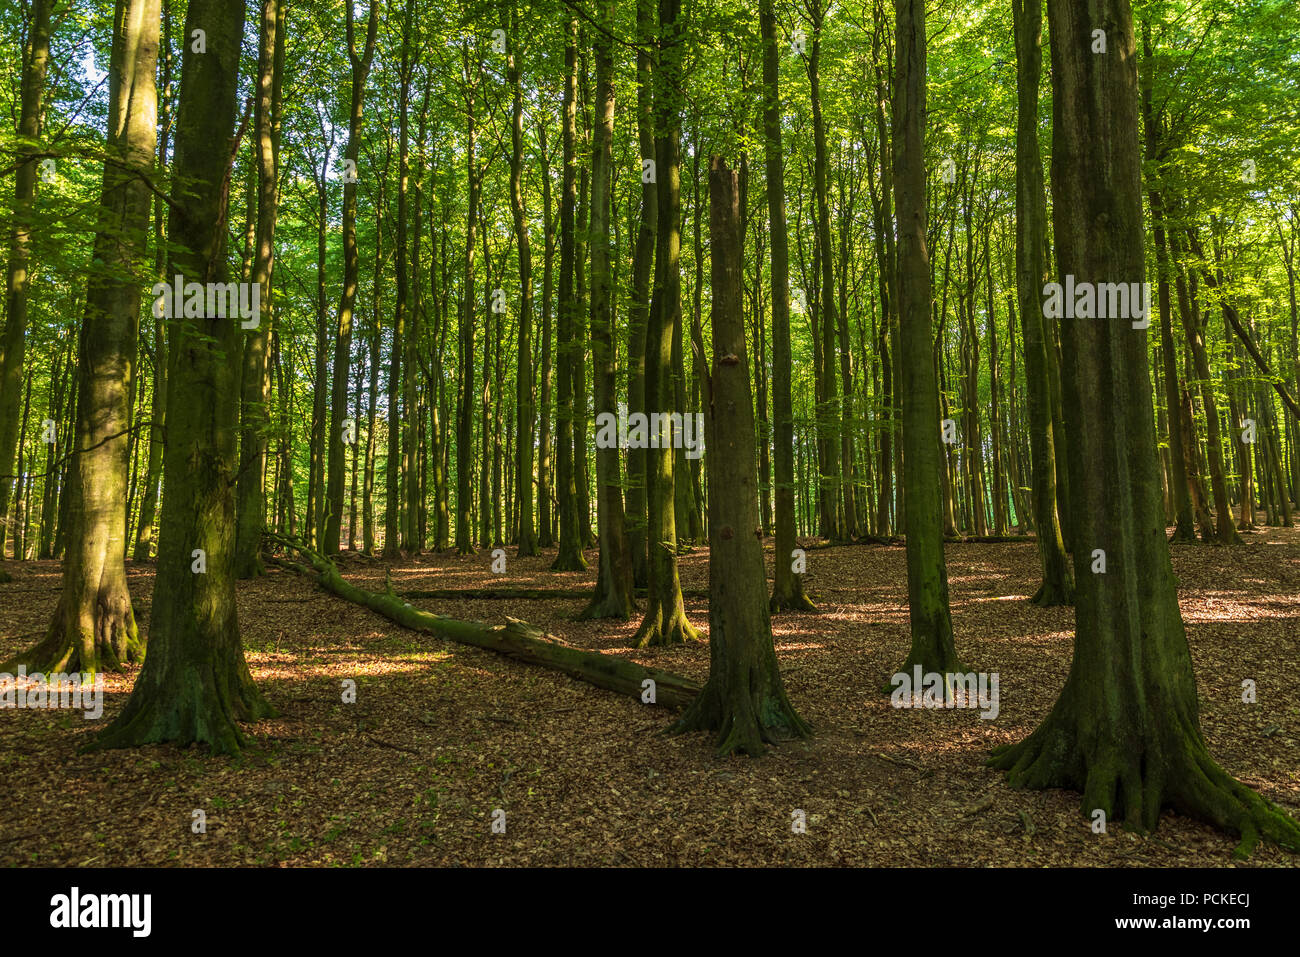 Primeval forest in north Europe - Stock Image